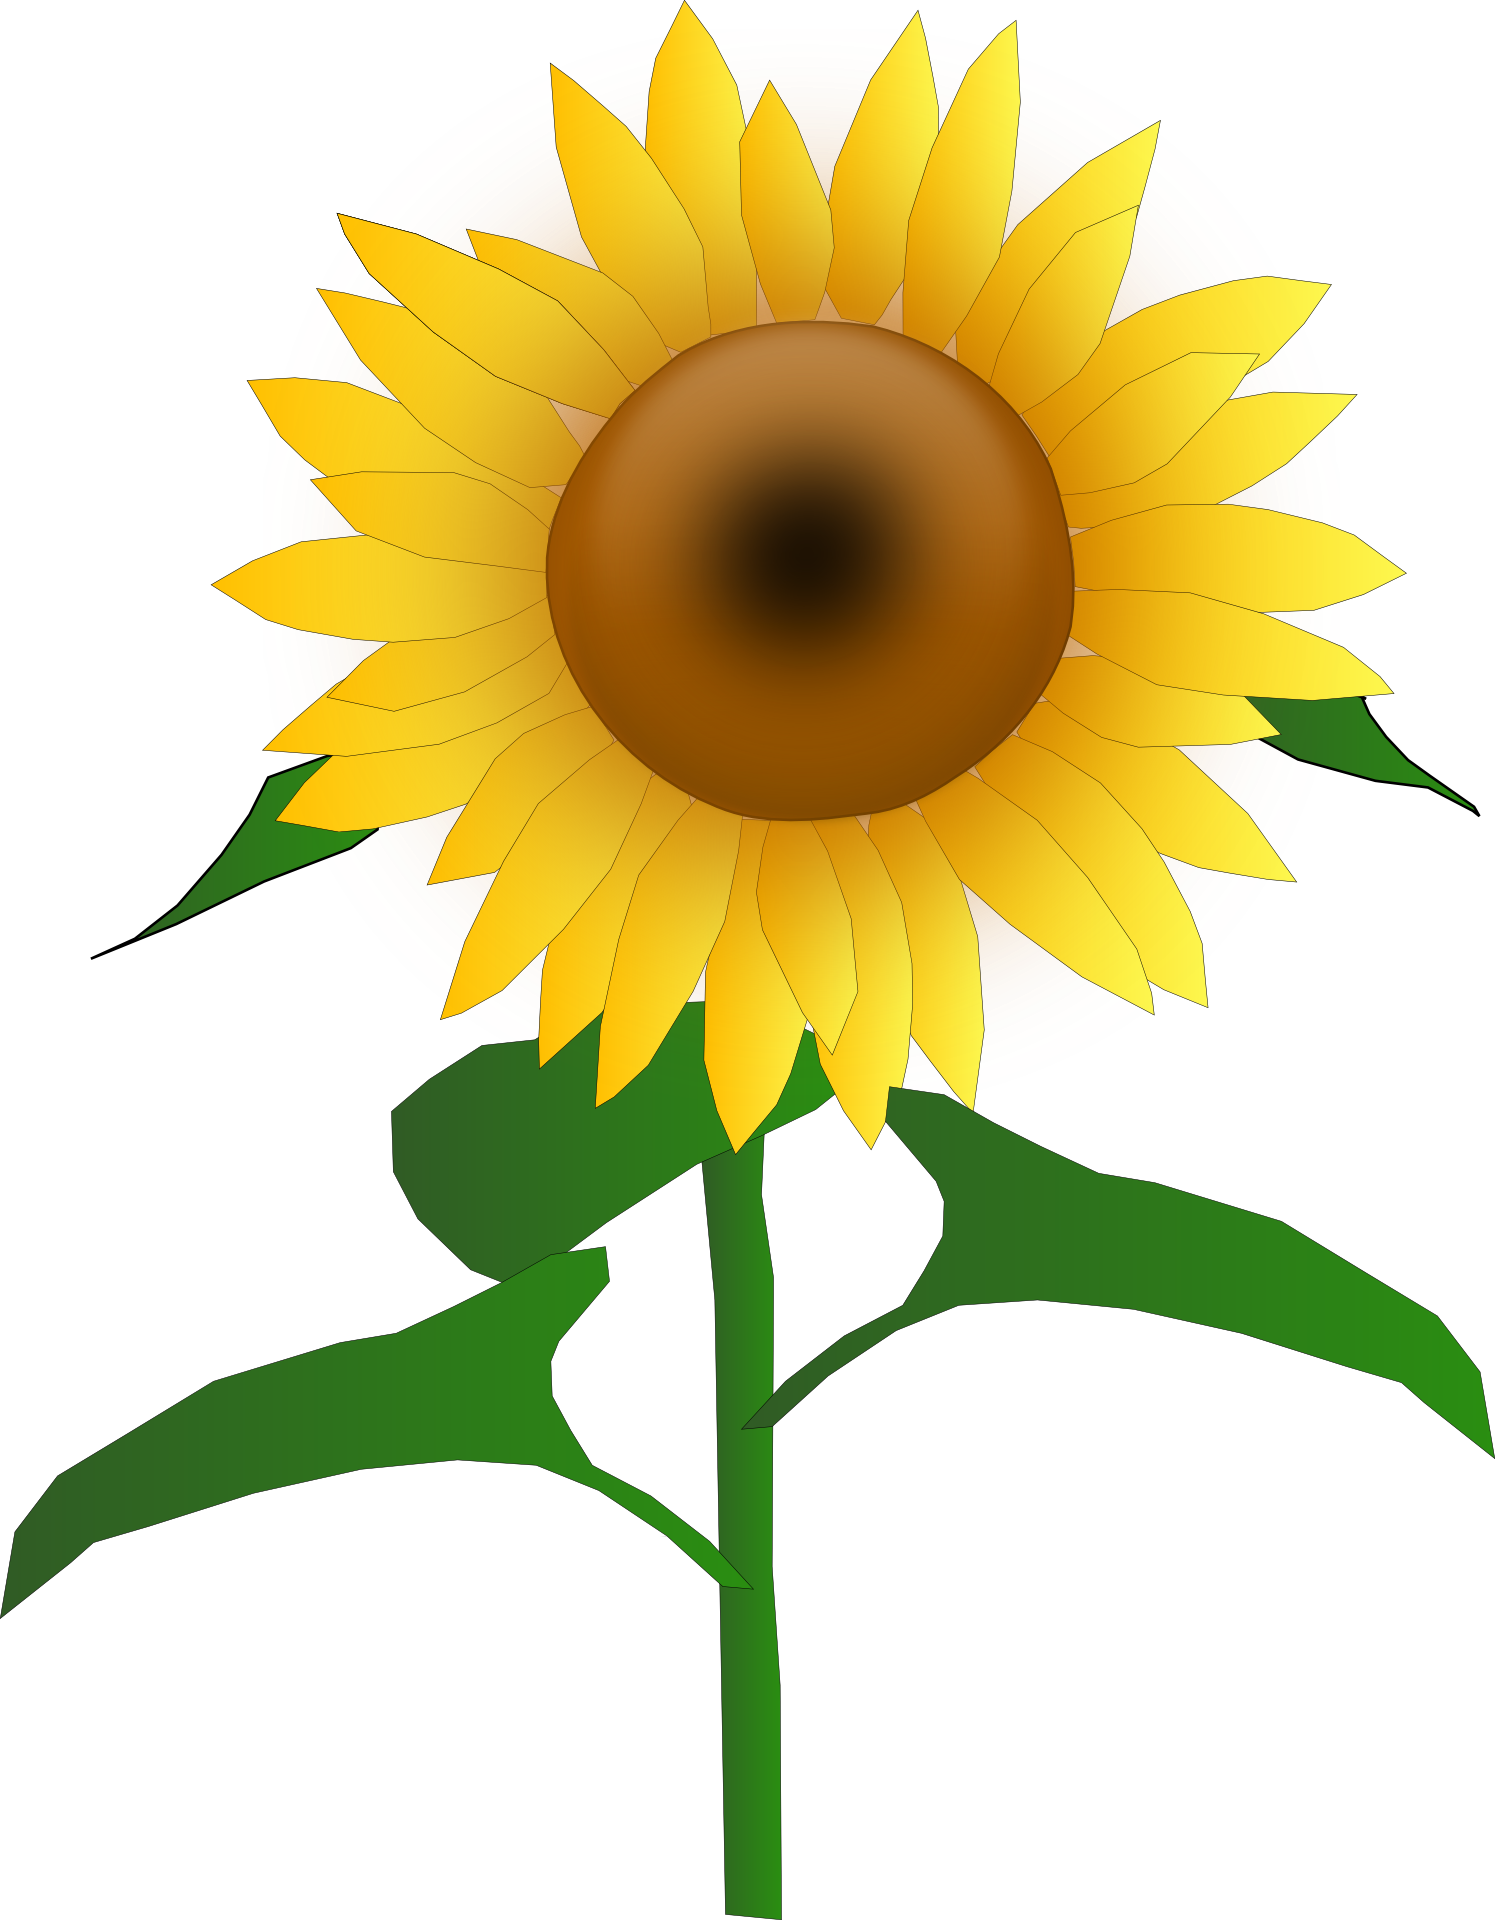 1495x1920 Alluring Sunflower Clipart Free 29 1035131 Paper Crafts Union Bankrc